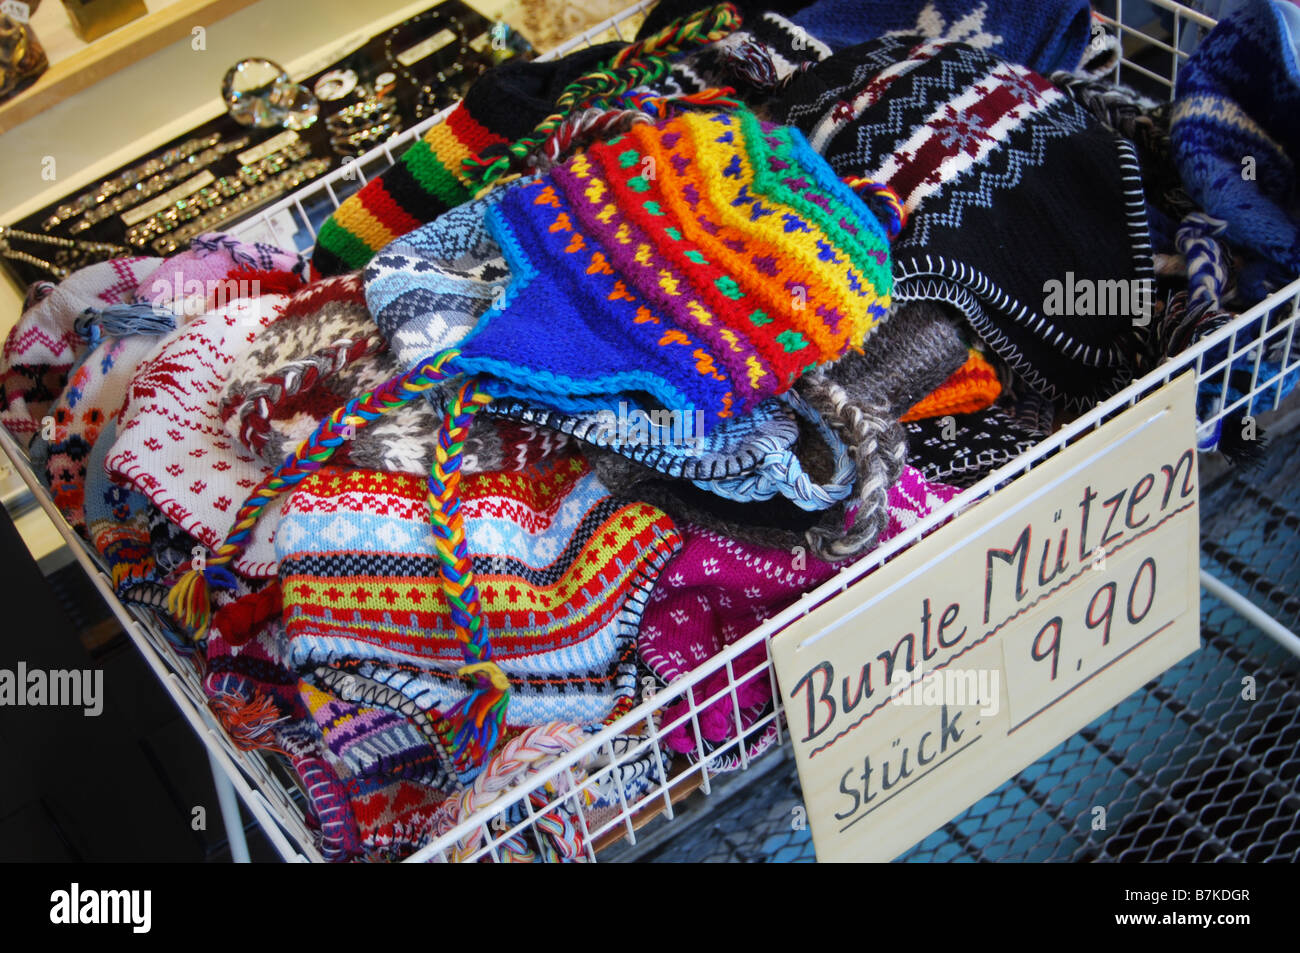 0bf0107e8 colourful ski hats for sale in Mayrhofen Austria Stock Photo ...